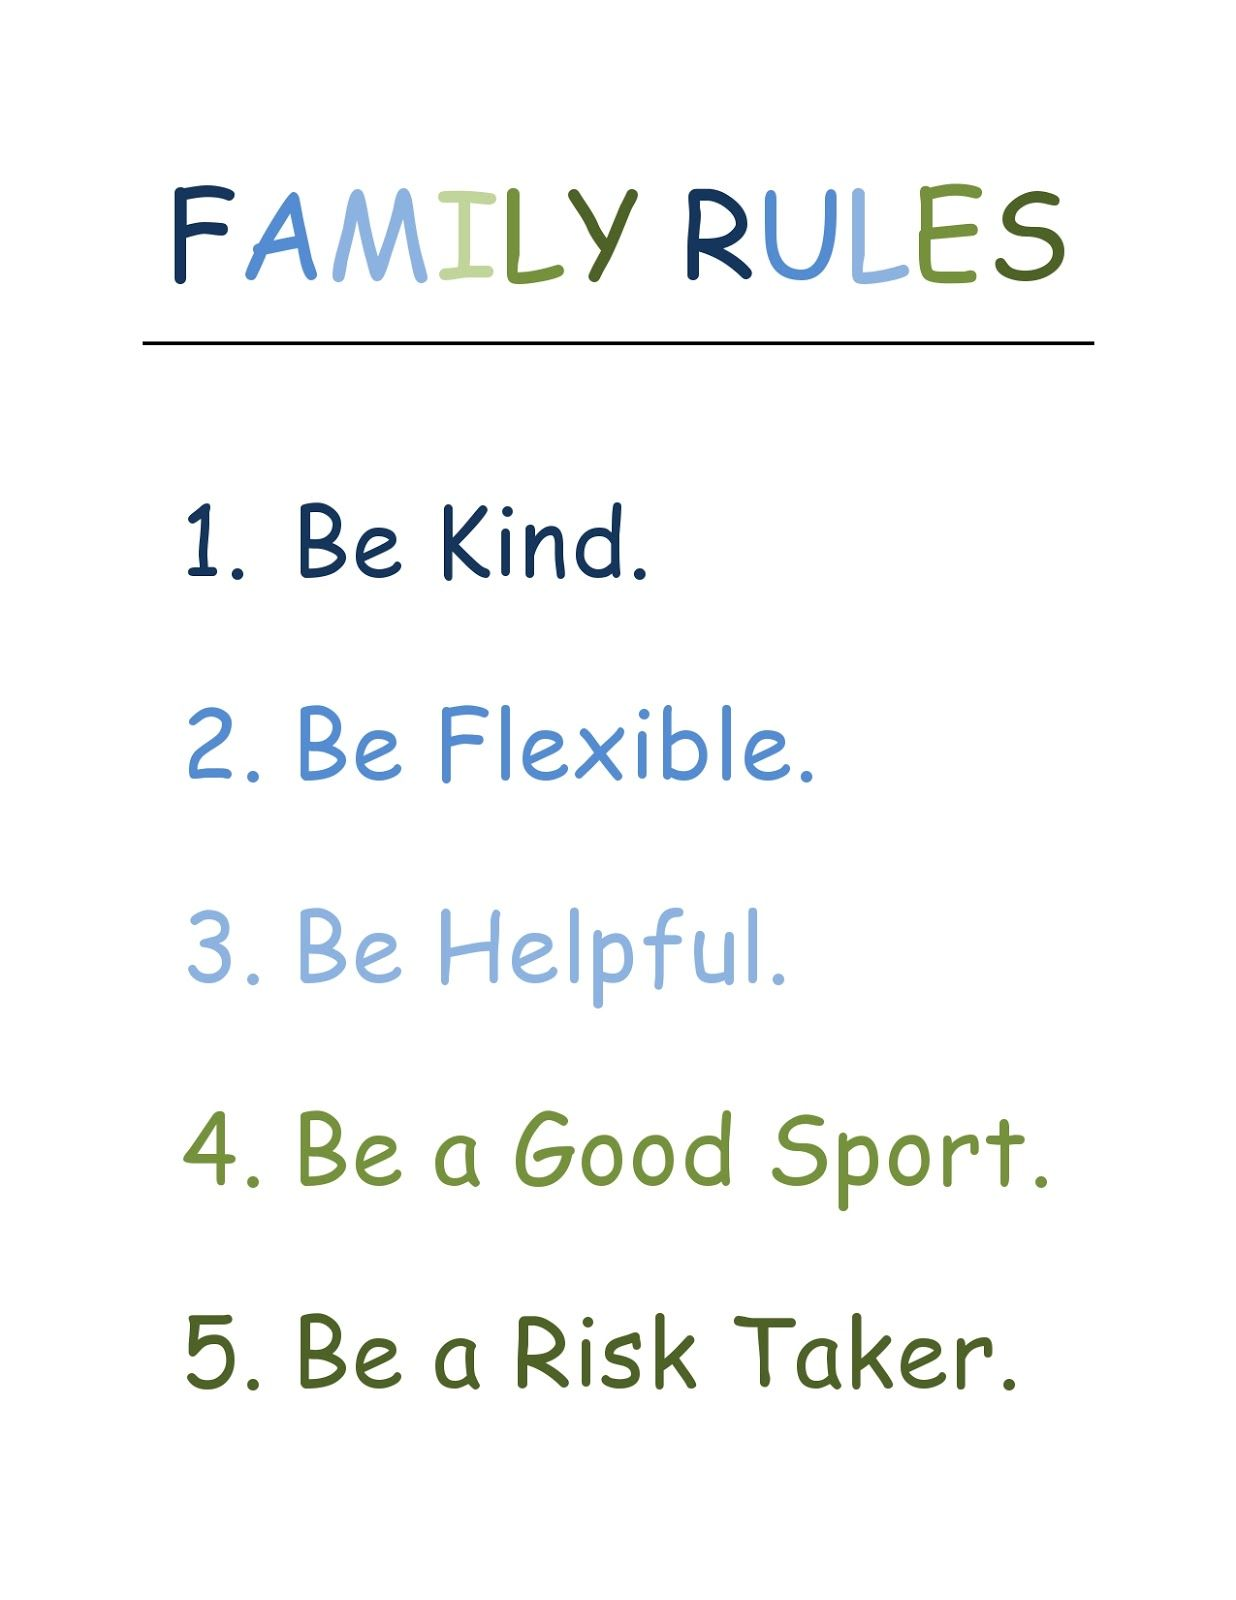 Family Rules 5 Easy And Simple Home Rules For Even The